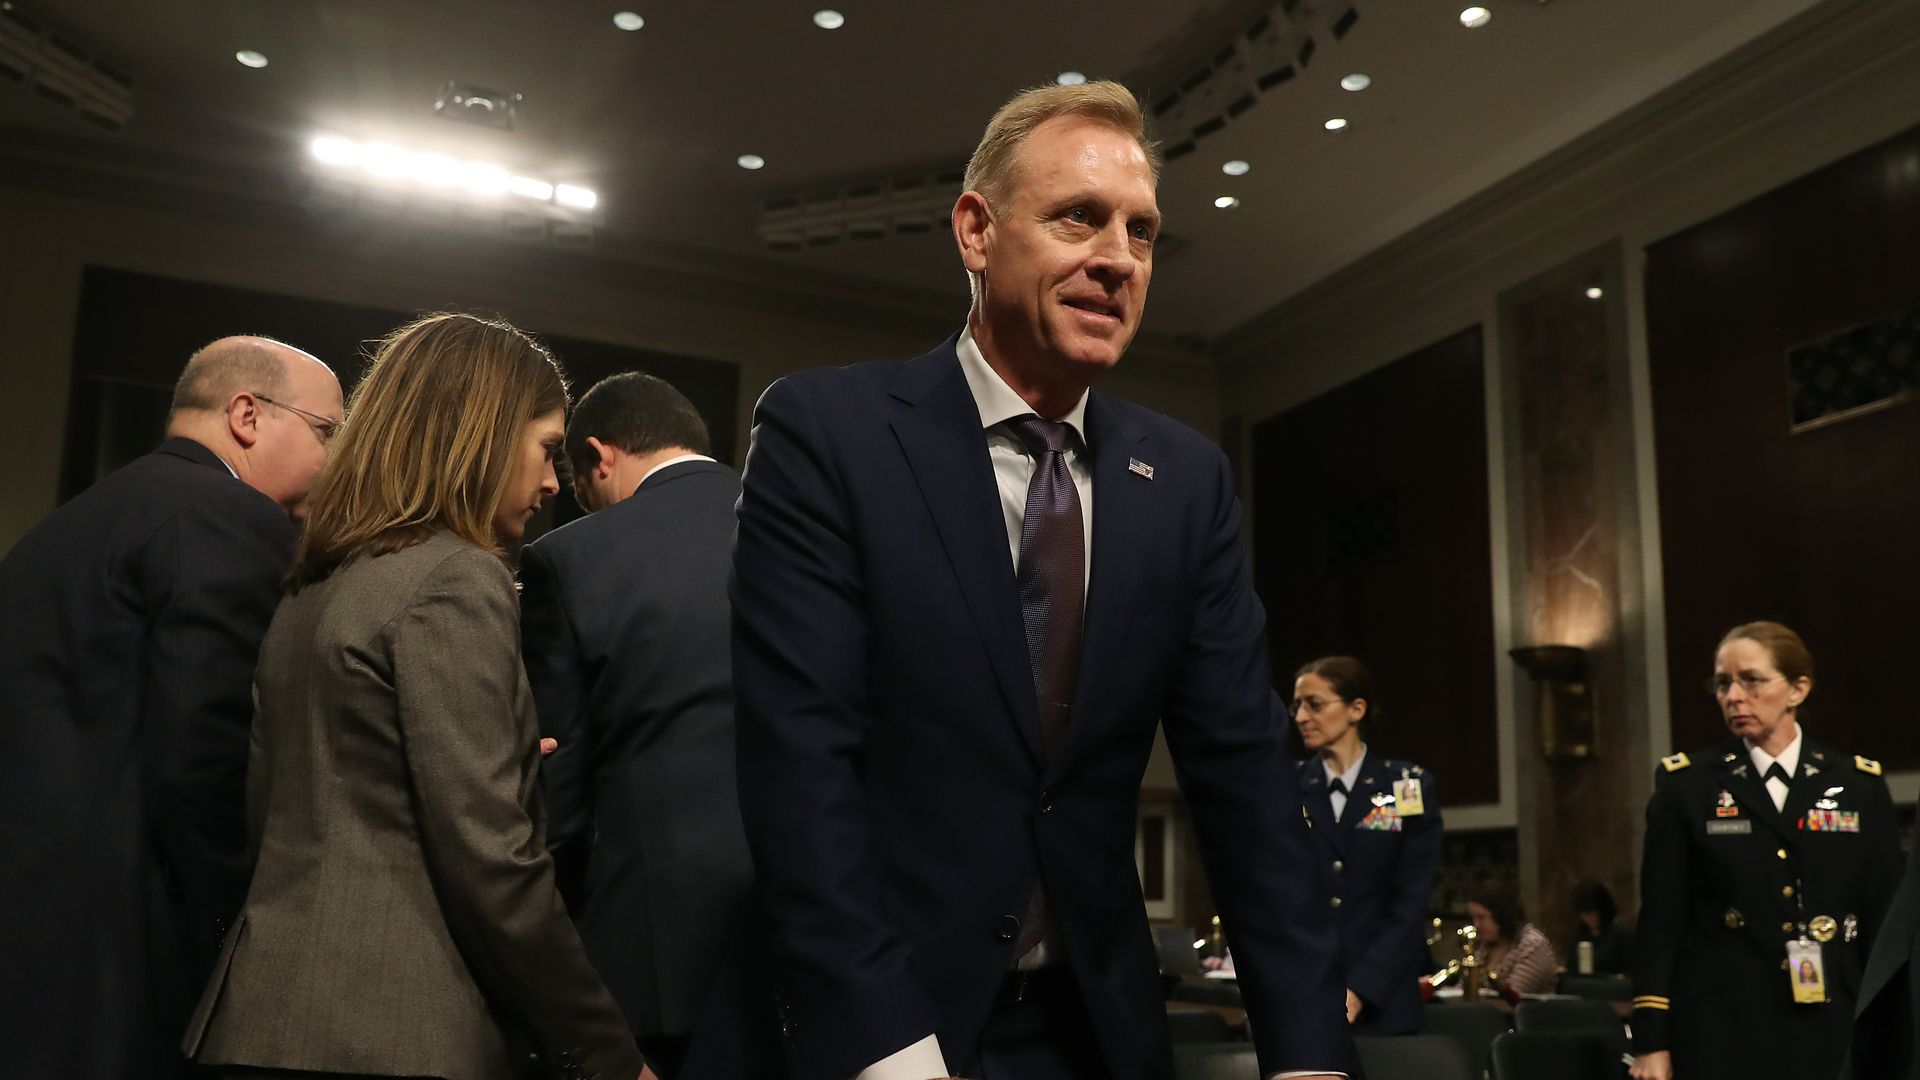 Acting Defense Secretary Patrick Shanahan stands behind the witness table at a congressional hearing